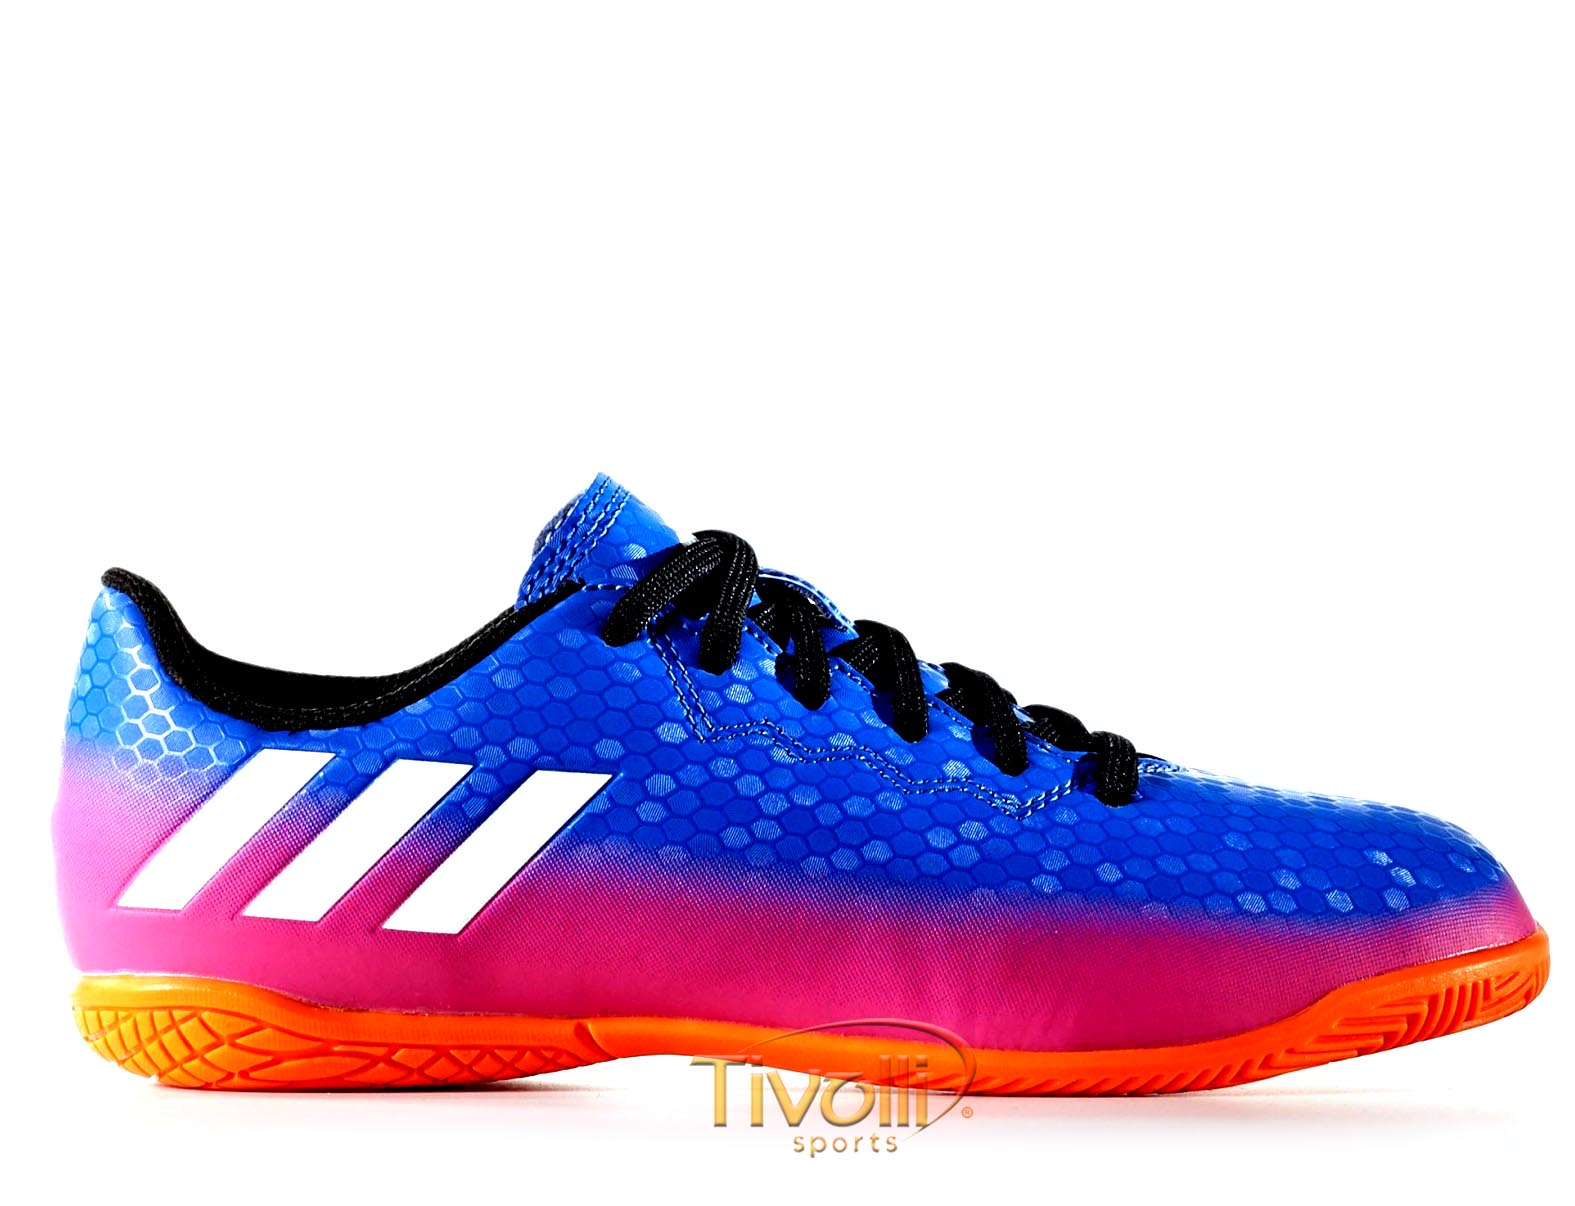 Chuteira Adidas Messi 16.4 IC